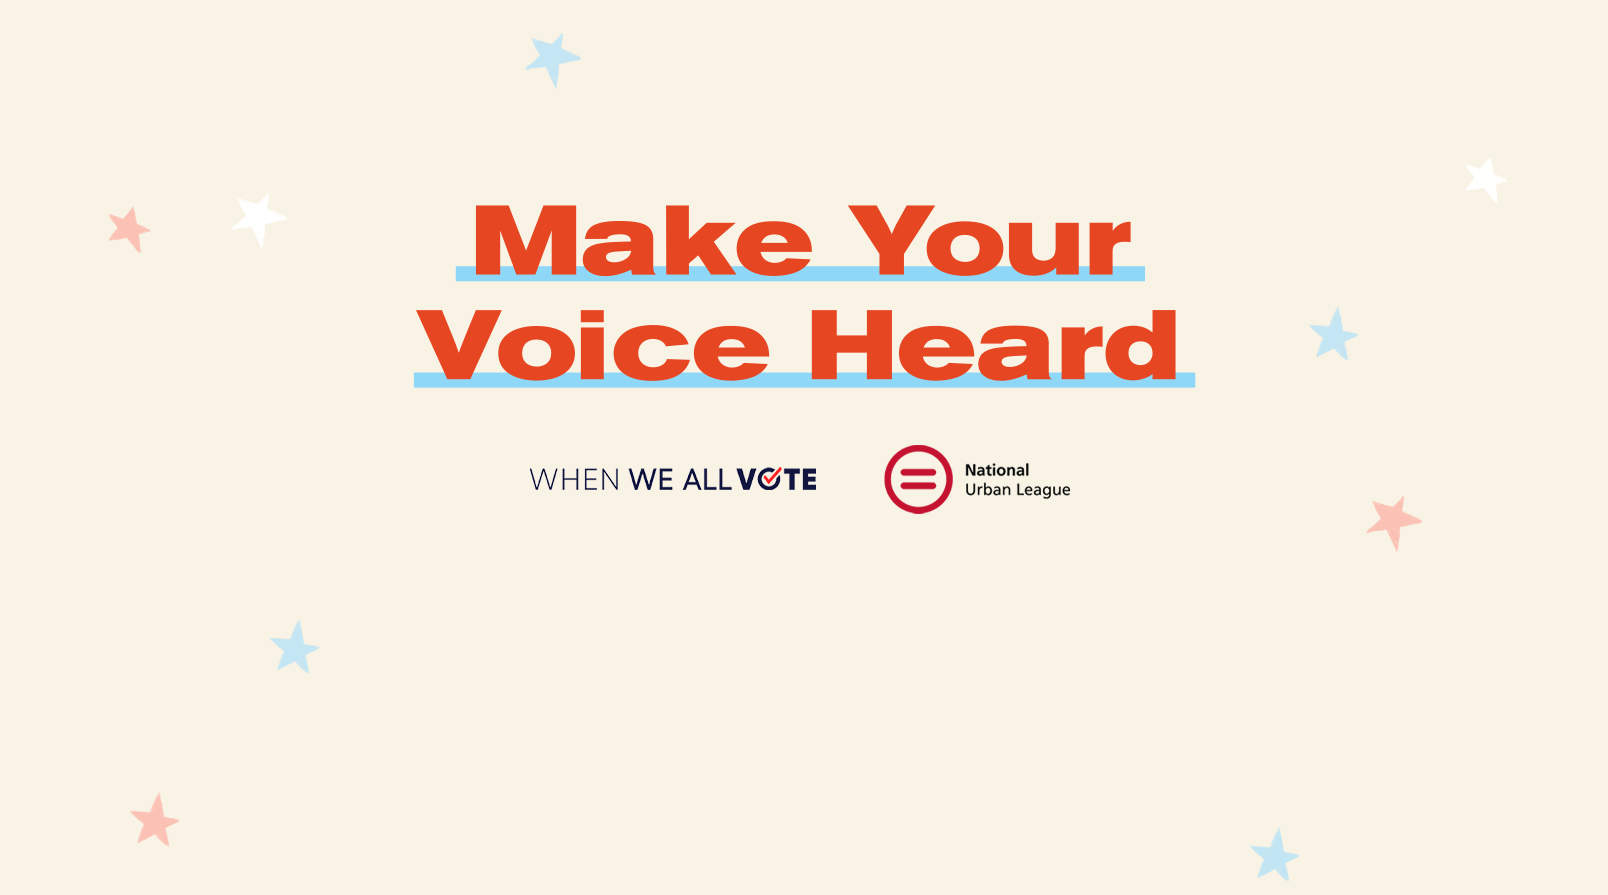 Make your voice heard. Make your voting plan today.